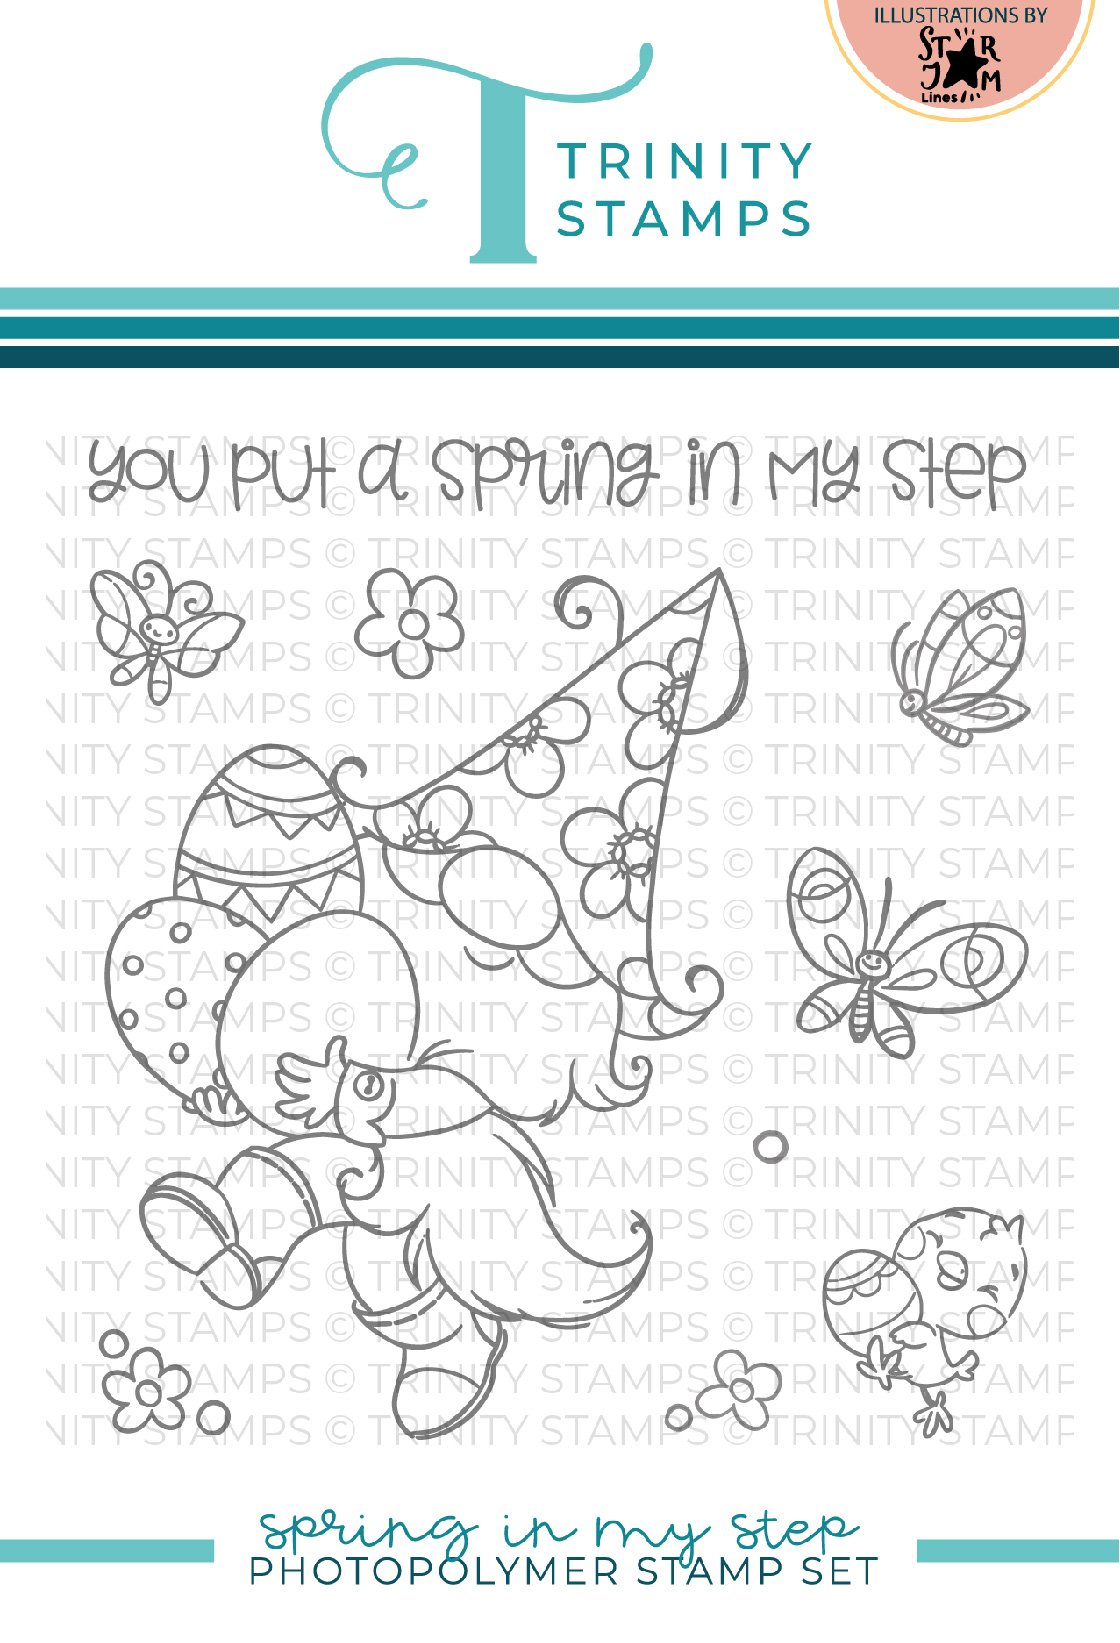 *NEW* - Trinity Stamps - Spring in my Step 4x4 Stamp Set